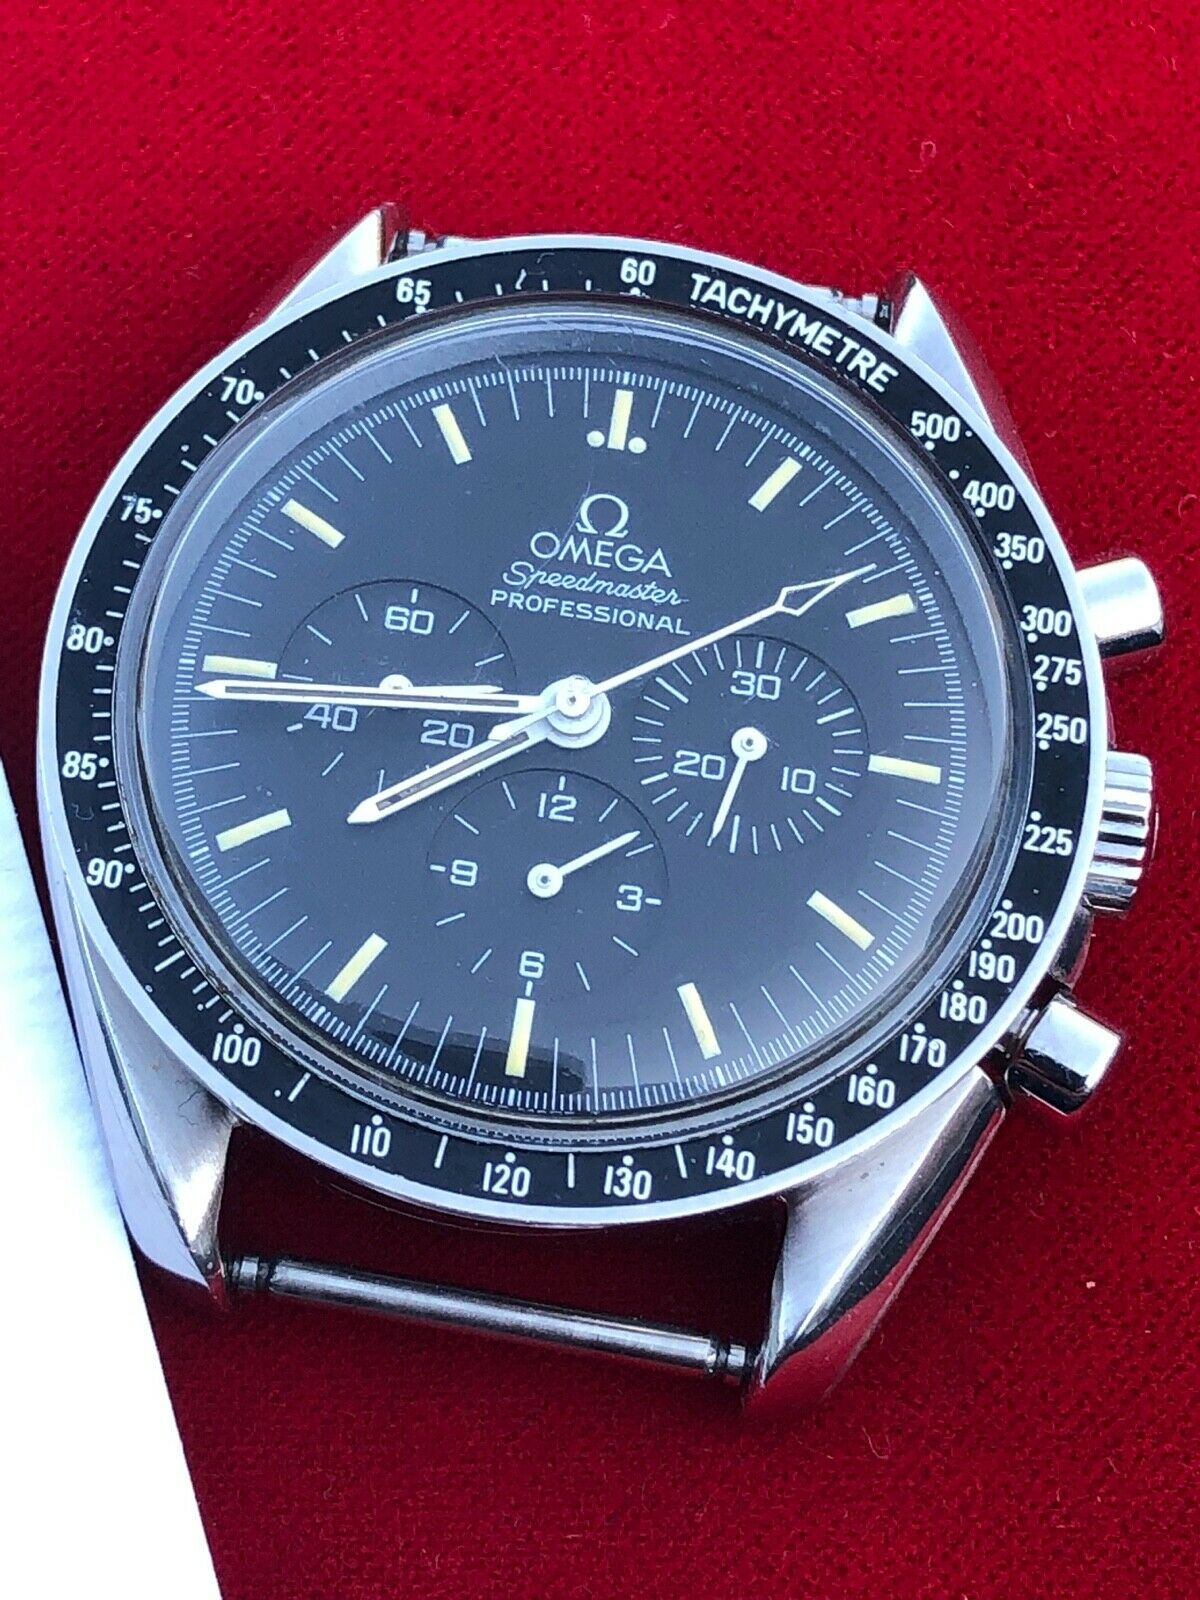 Omega Speedmaster 105.012-65, 321, Omega Museum Extract,  Feb 28th 1967 - watch picture 1